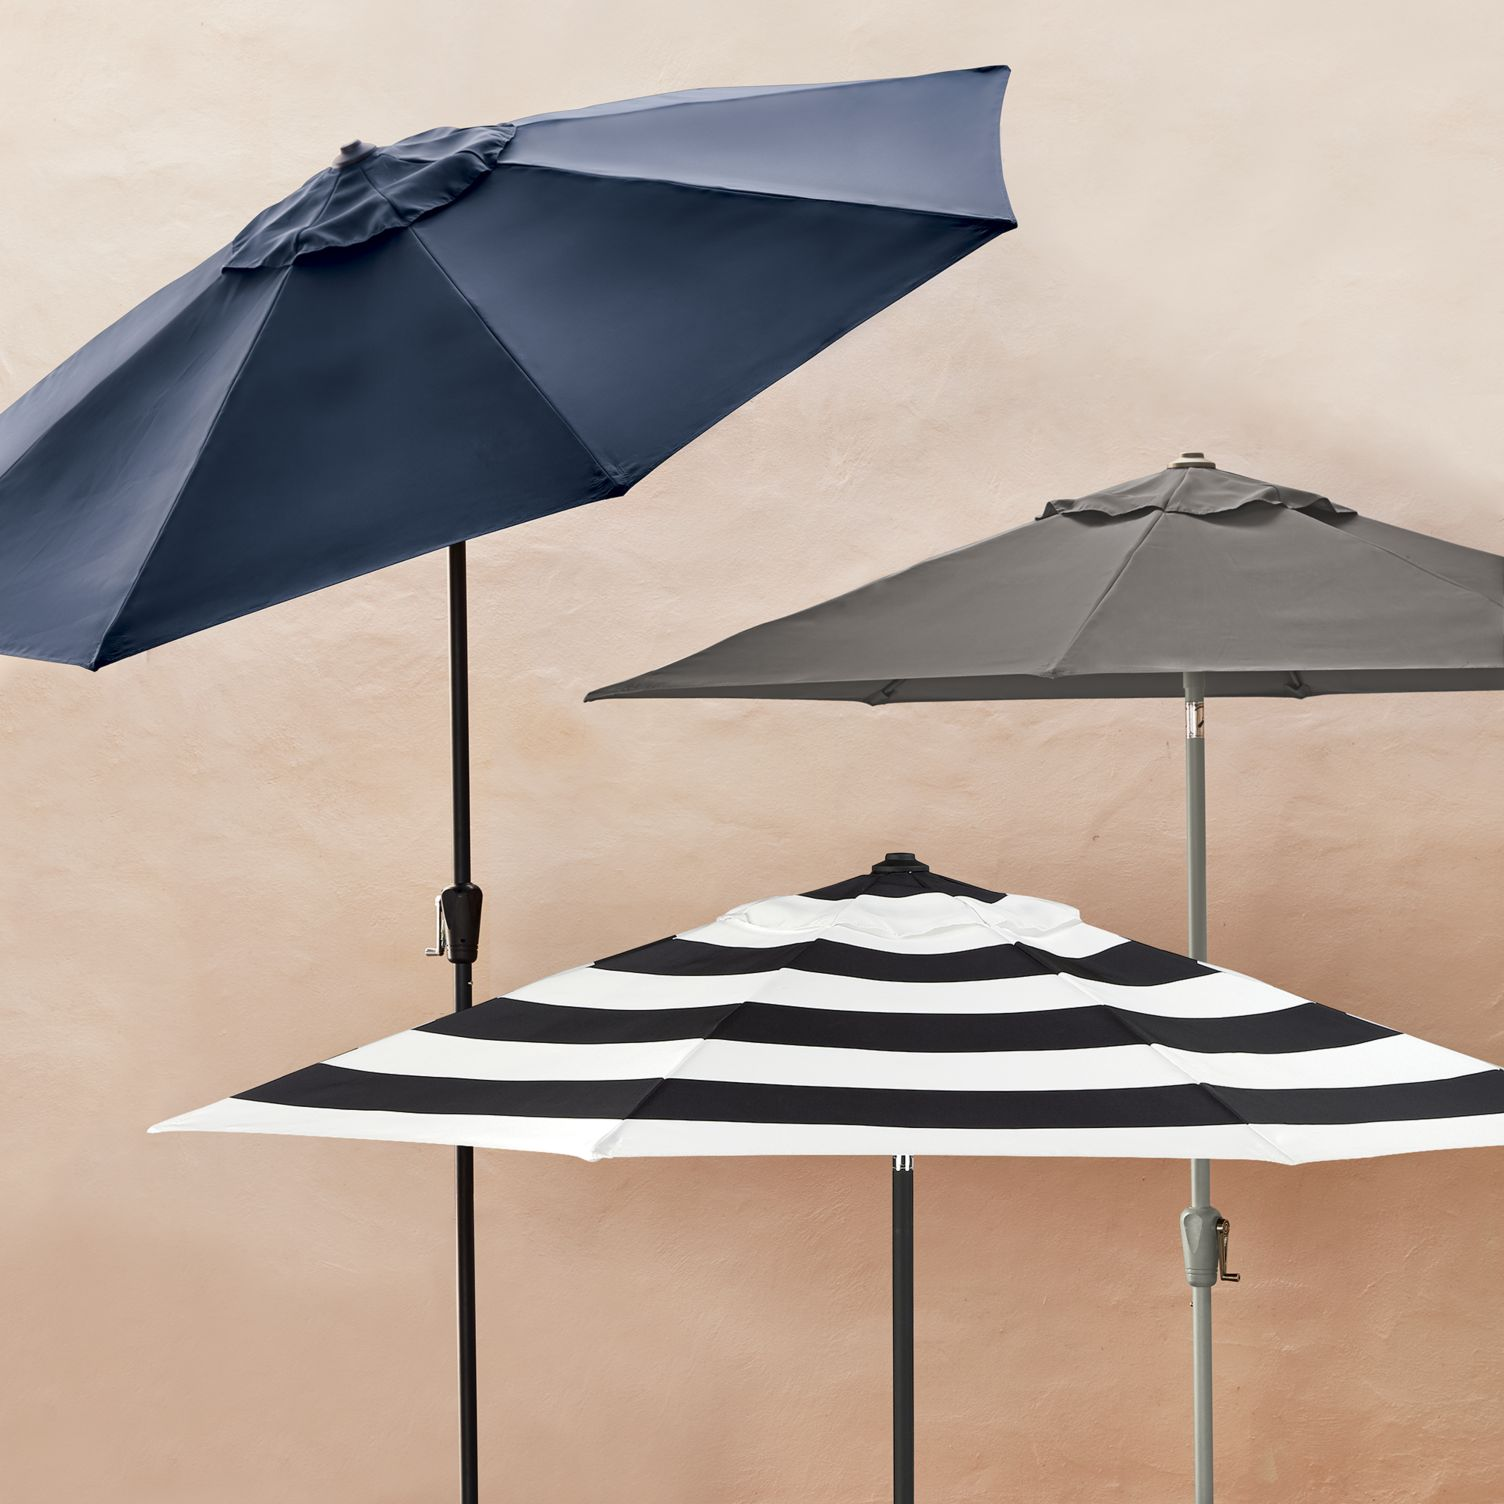 Patio umbrellas from CB2